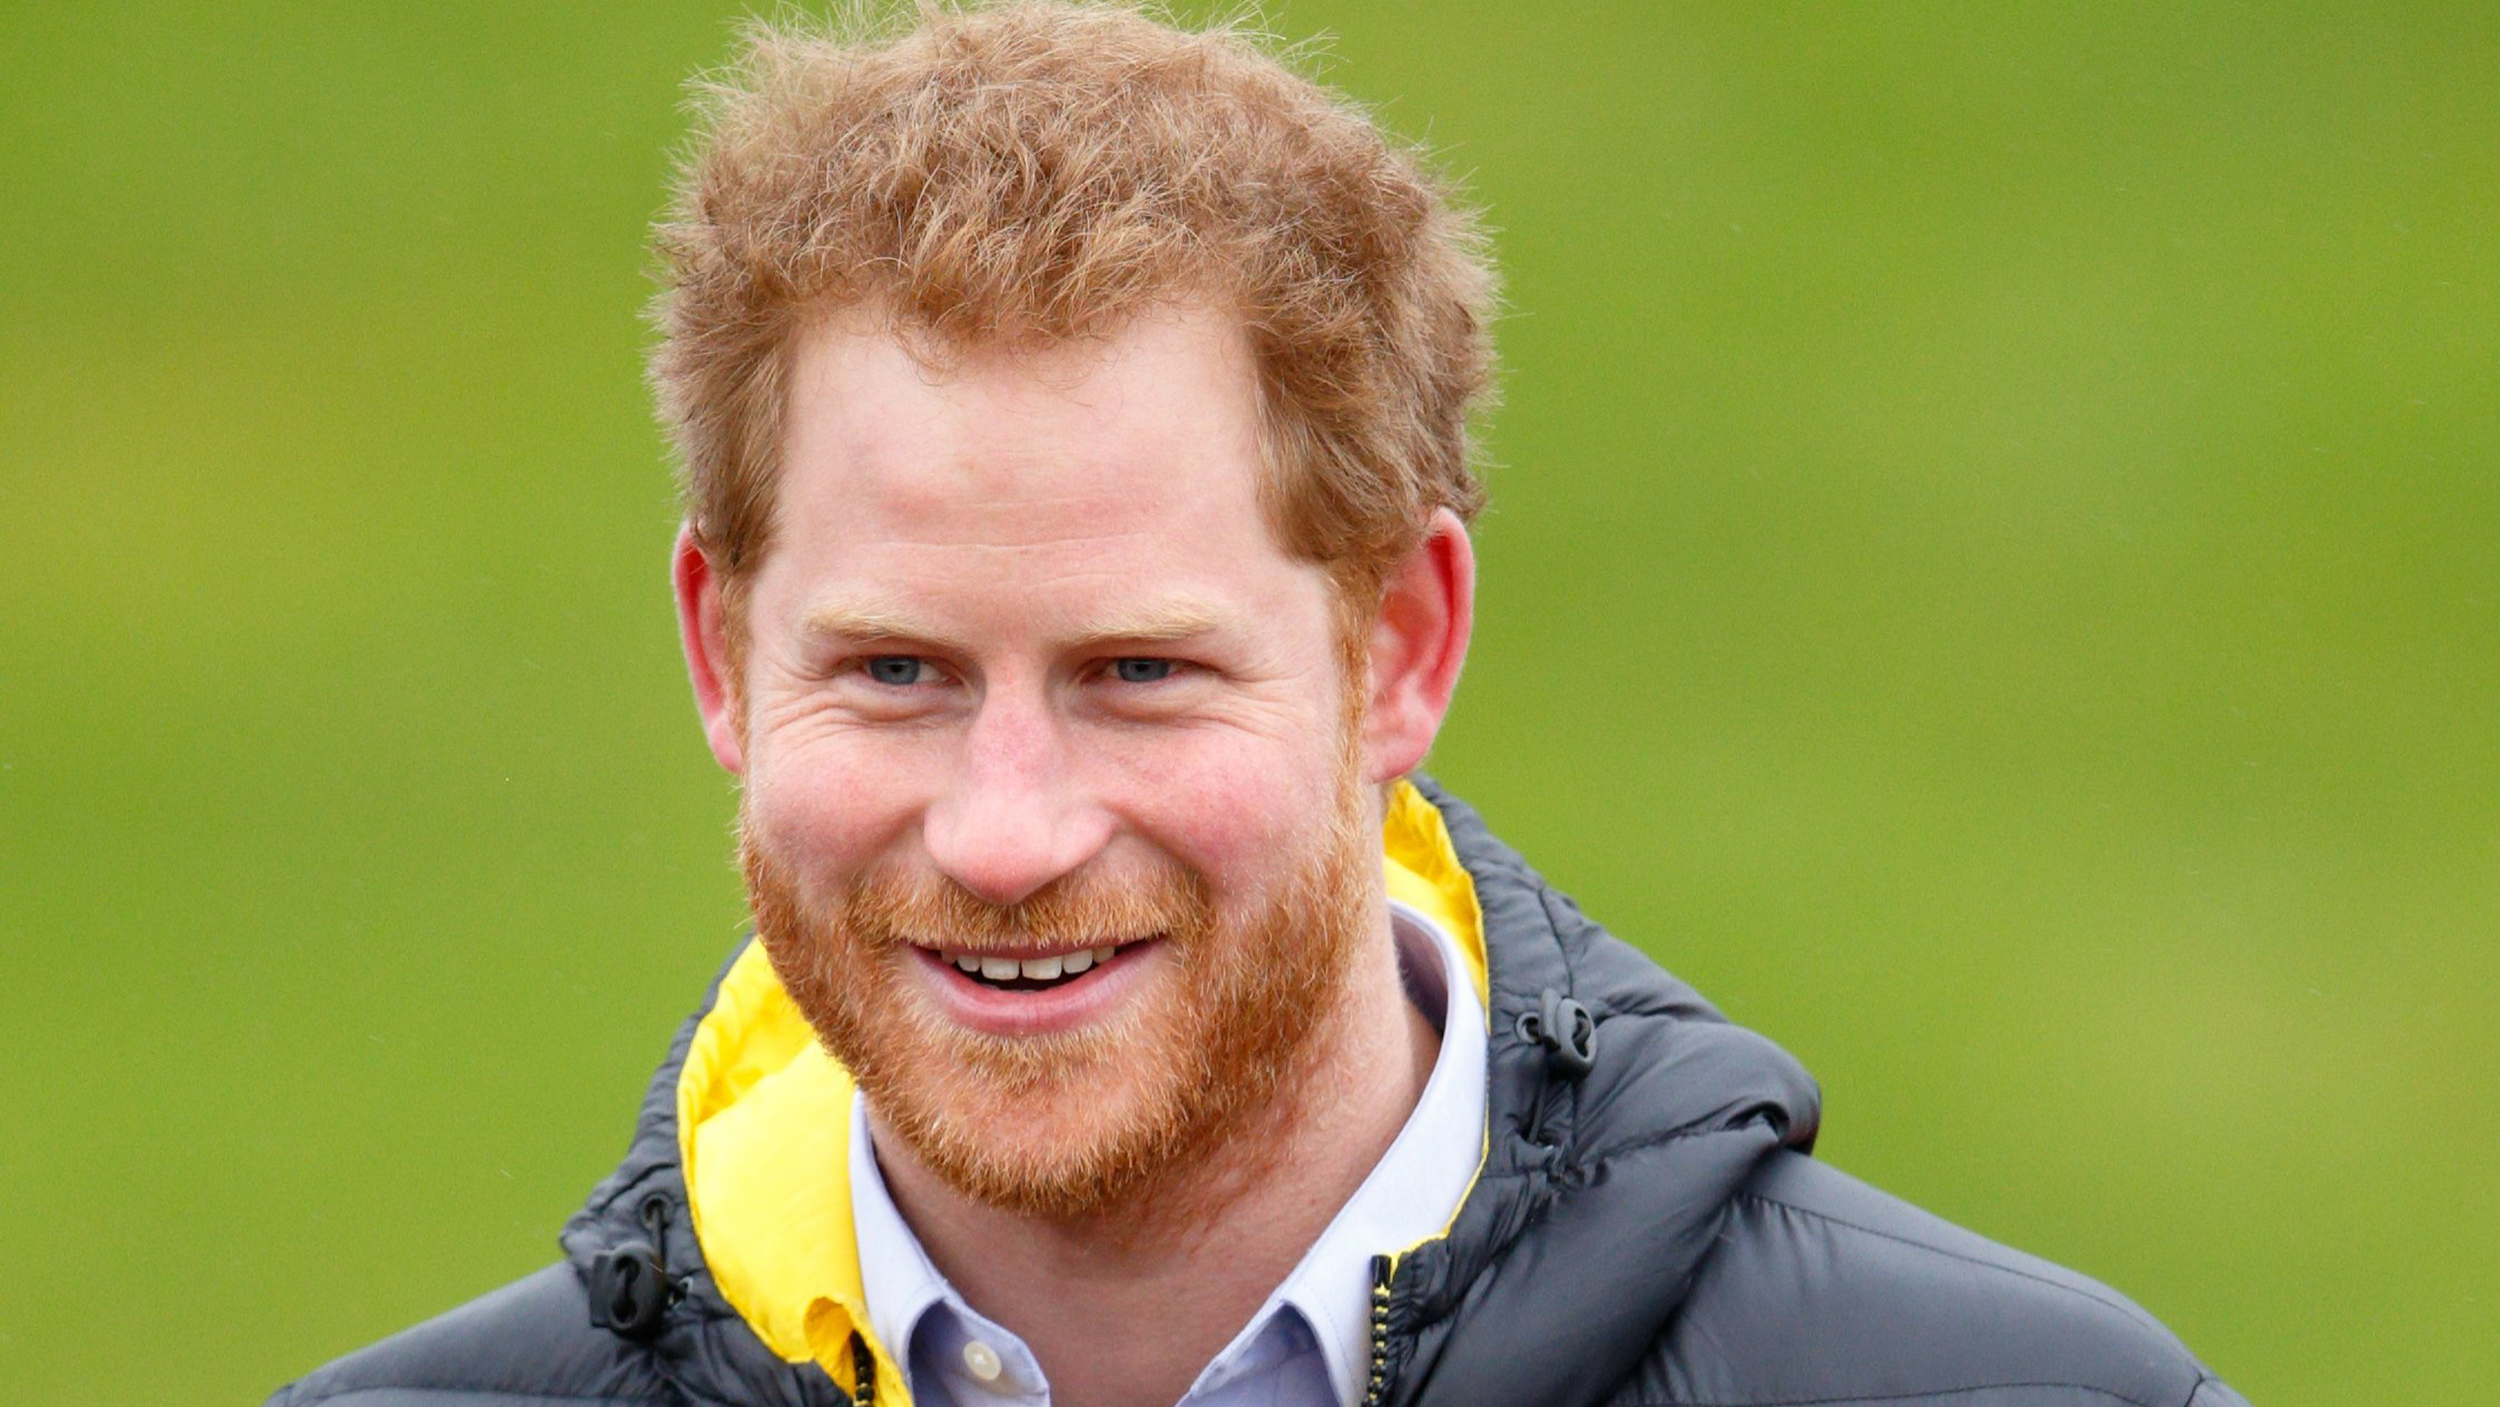 PRINCE HARRY AND THE AFTERMATH OF DIANA